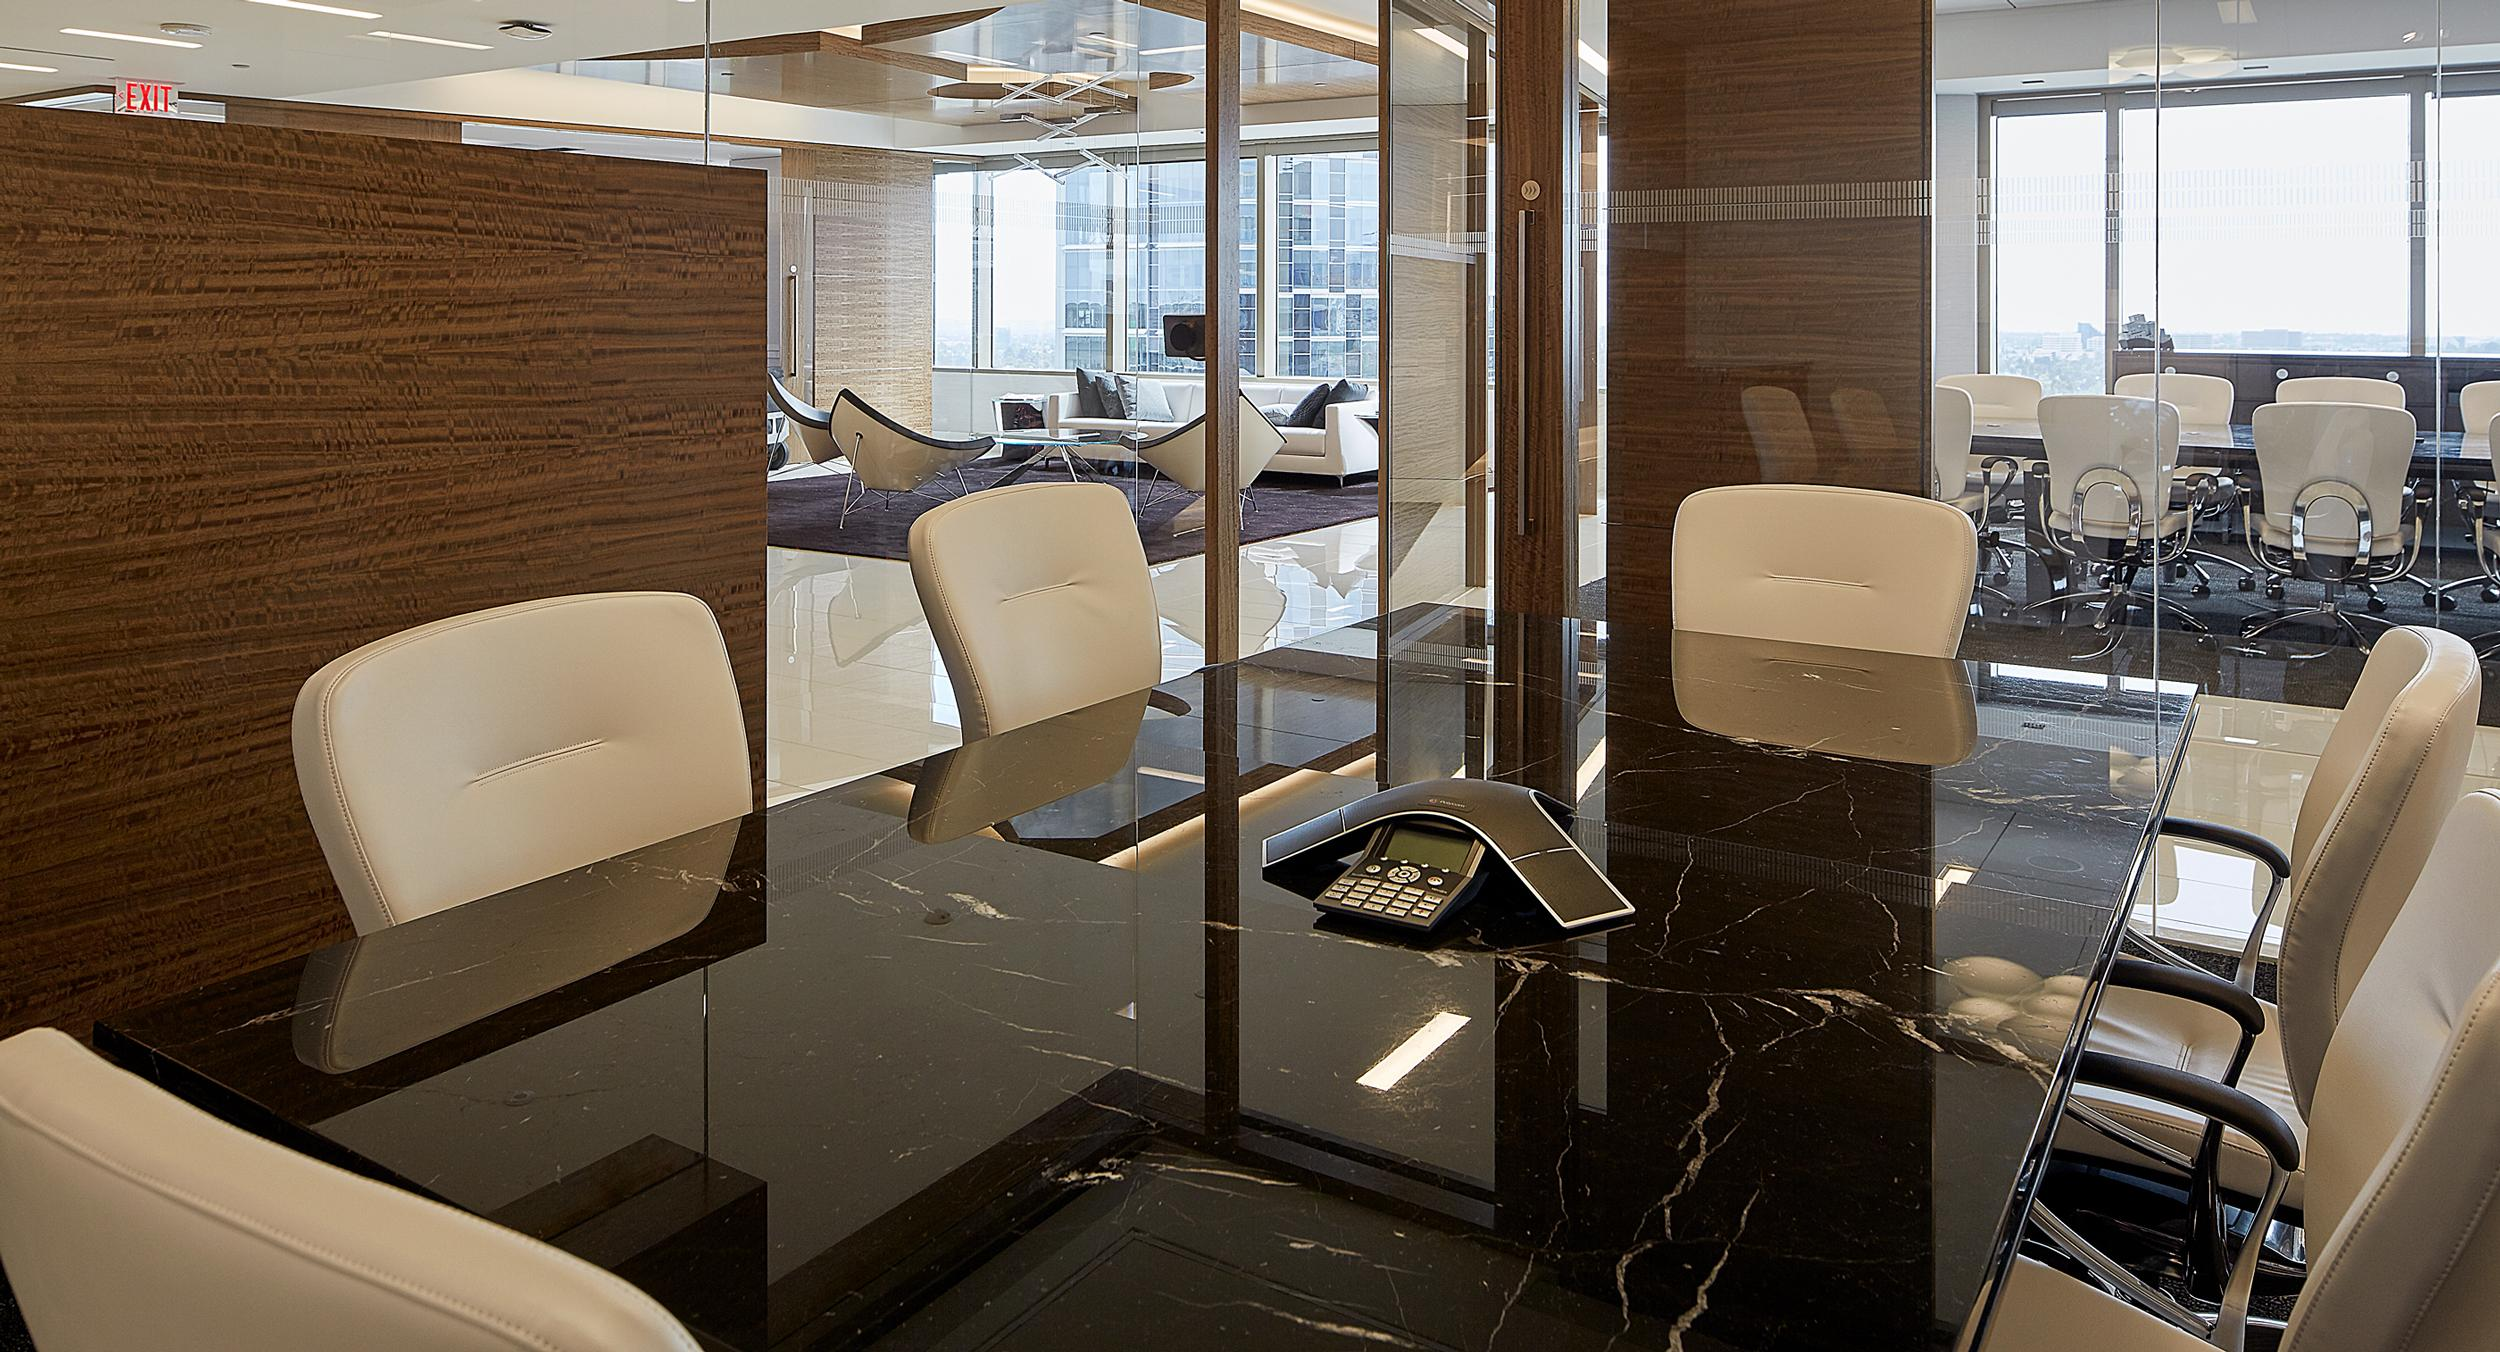 Hogan's conference rooms feature Mesa tables with beautiful polished stone surfaces.